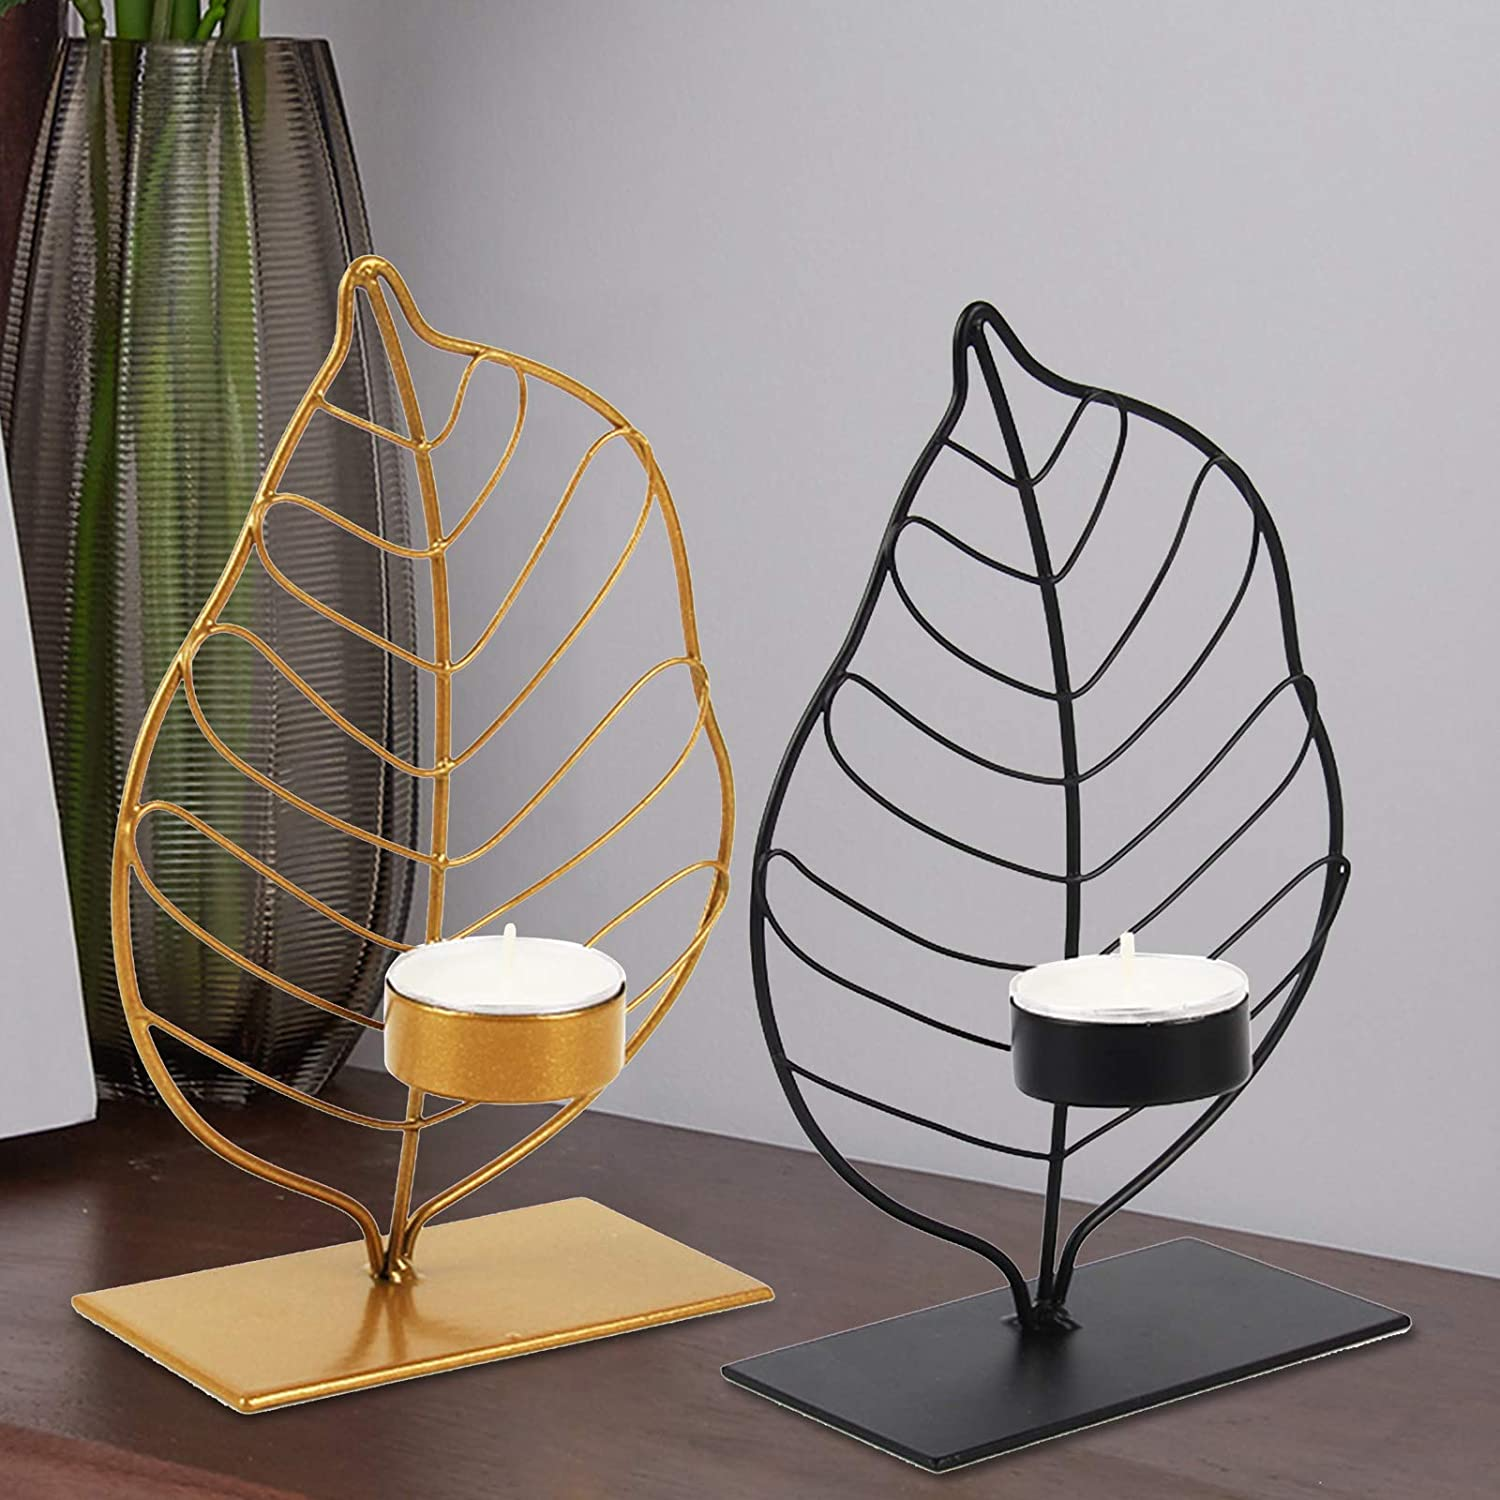 LINNSZ Nordic Style Leaf Candle Candlestick Holder Candela Topics New York Mall on TV Metal